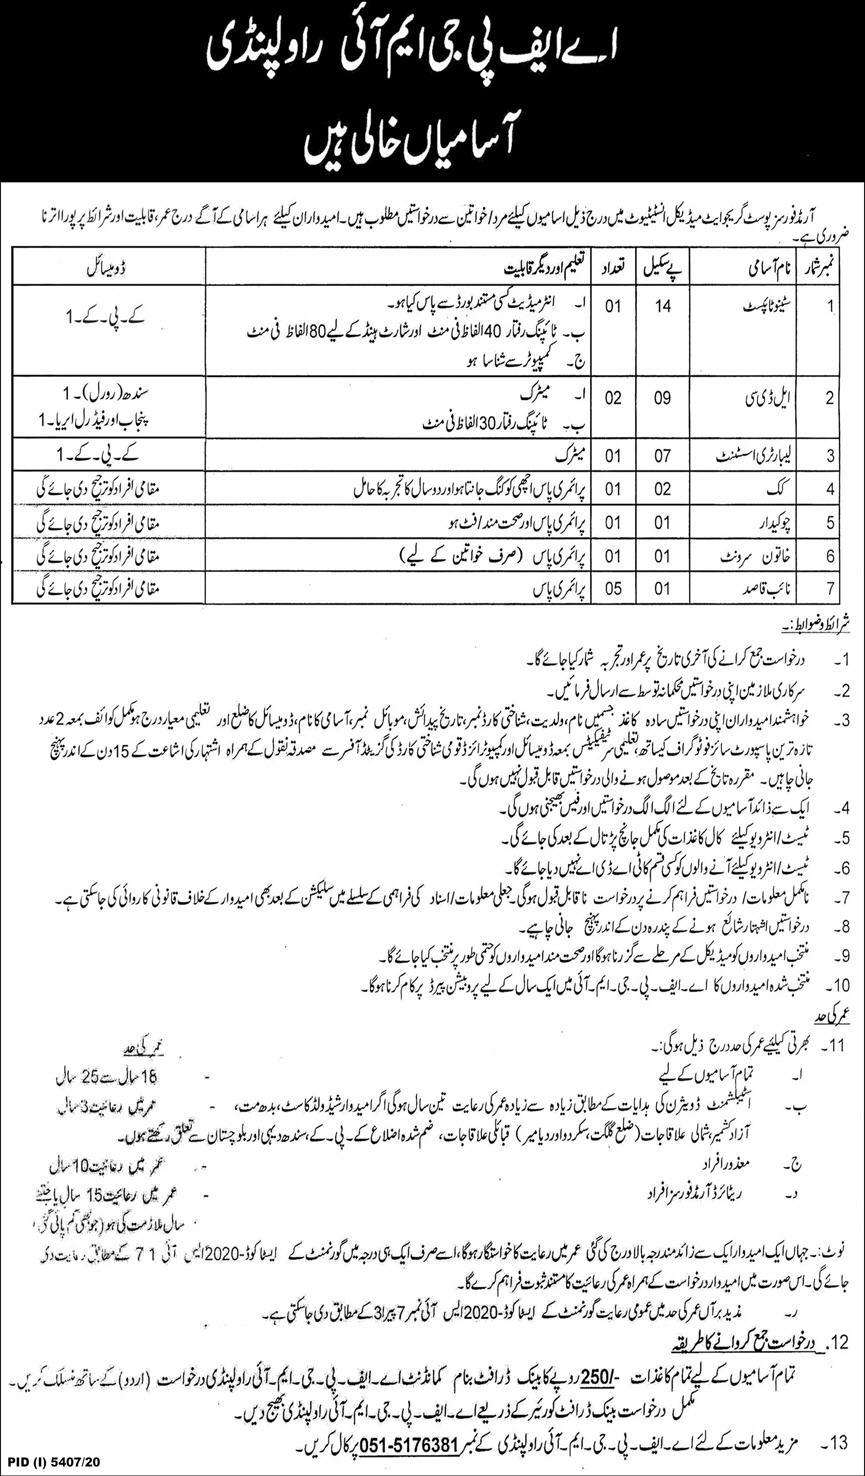 Armed Forces Postgraduate Medical Institute Jobs 2021